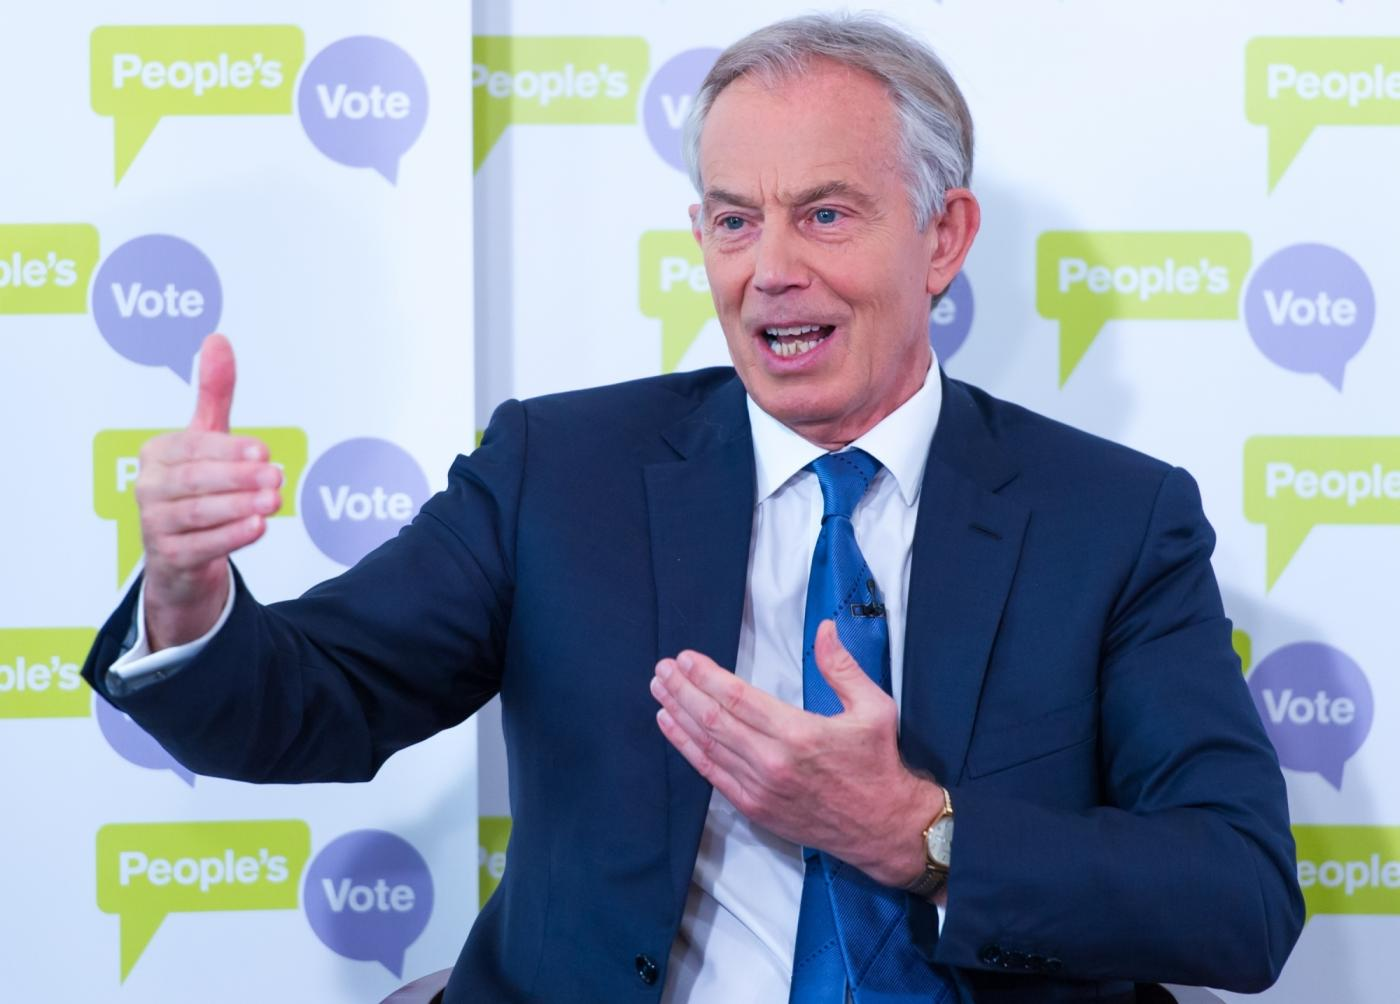 LONDON, Dec. 14, 2018 (Xinhua) -- Former British Prime Minister Tony Blair delivers a speech on Brexit in an event in London, Britain, on Dec. 14, 2018. Tony Blair, a strong supporter of Britain remaining in the EU, said in a speech Friday there would soon be a majority in the British parliament for a second referendum on EU membership. (Xinhua/IANS) by .